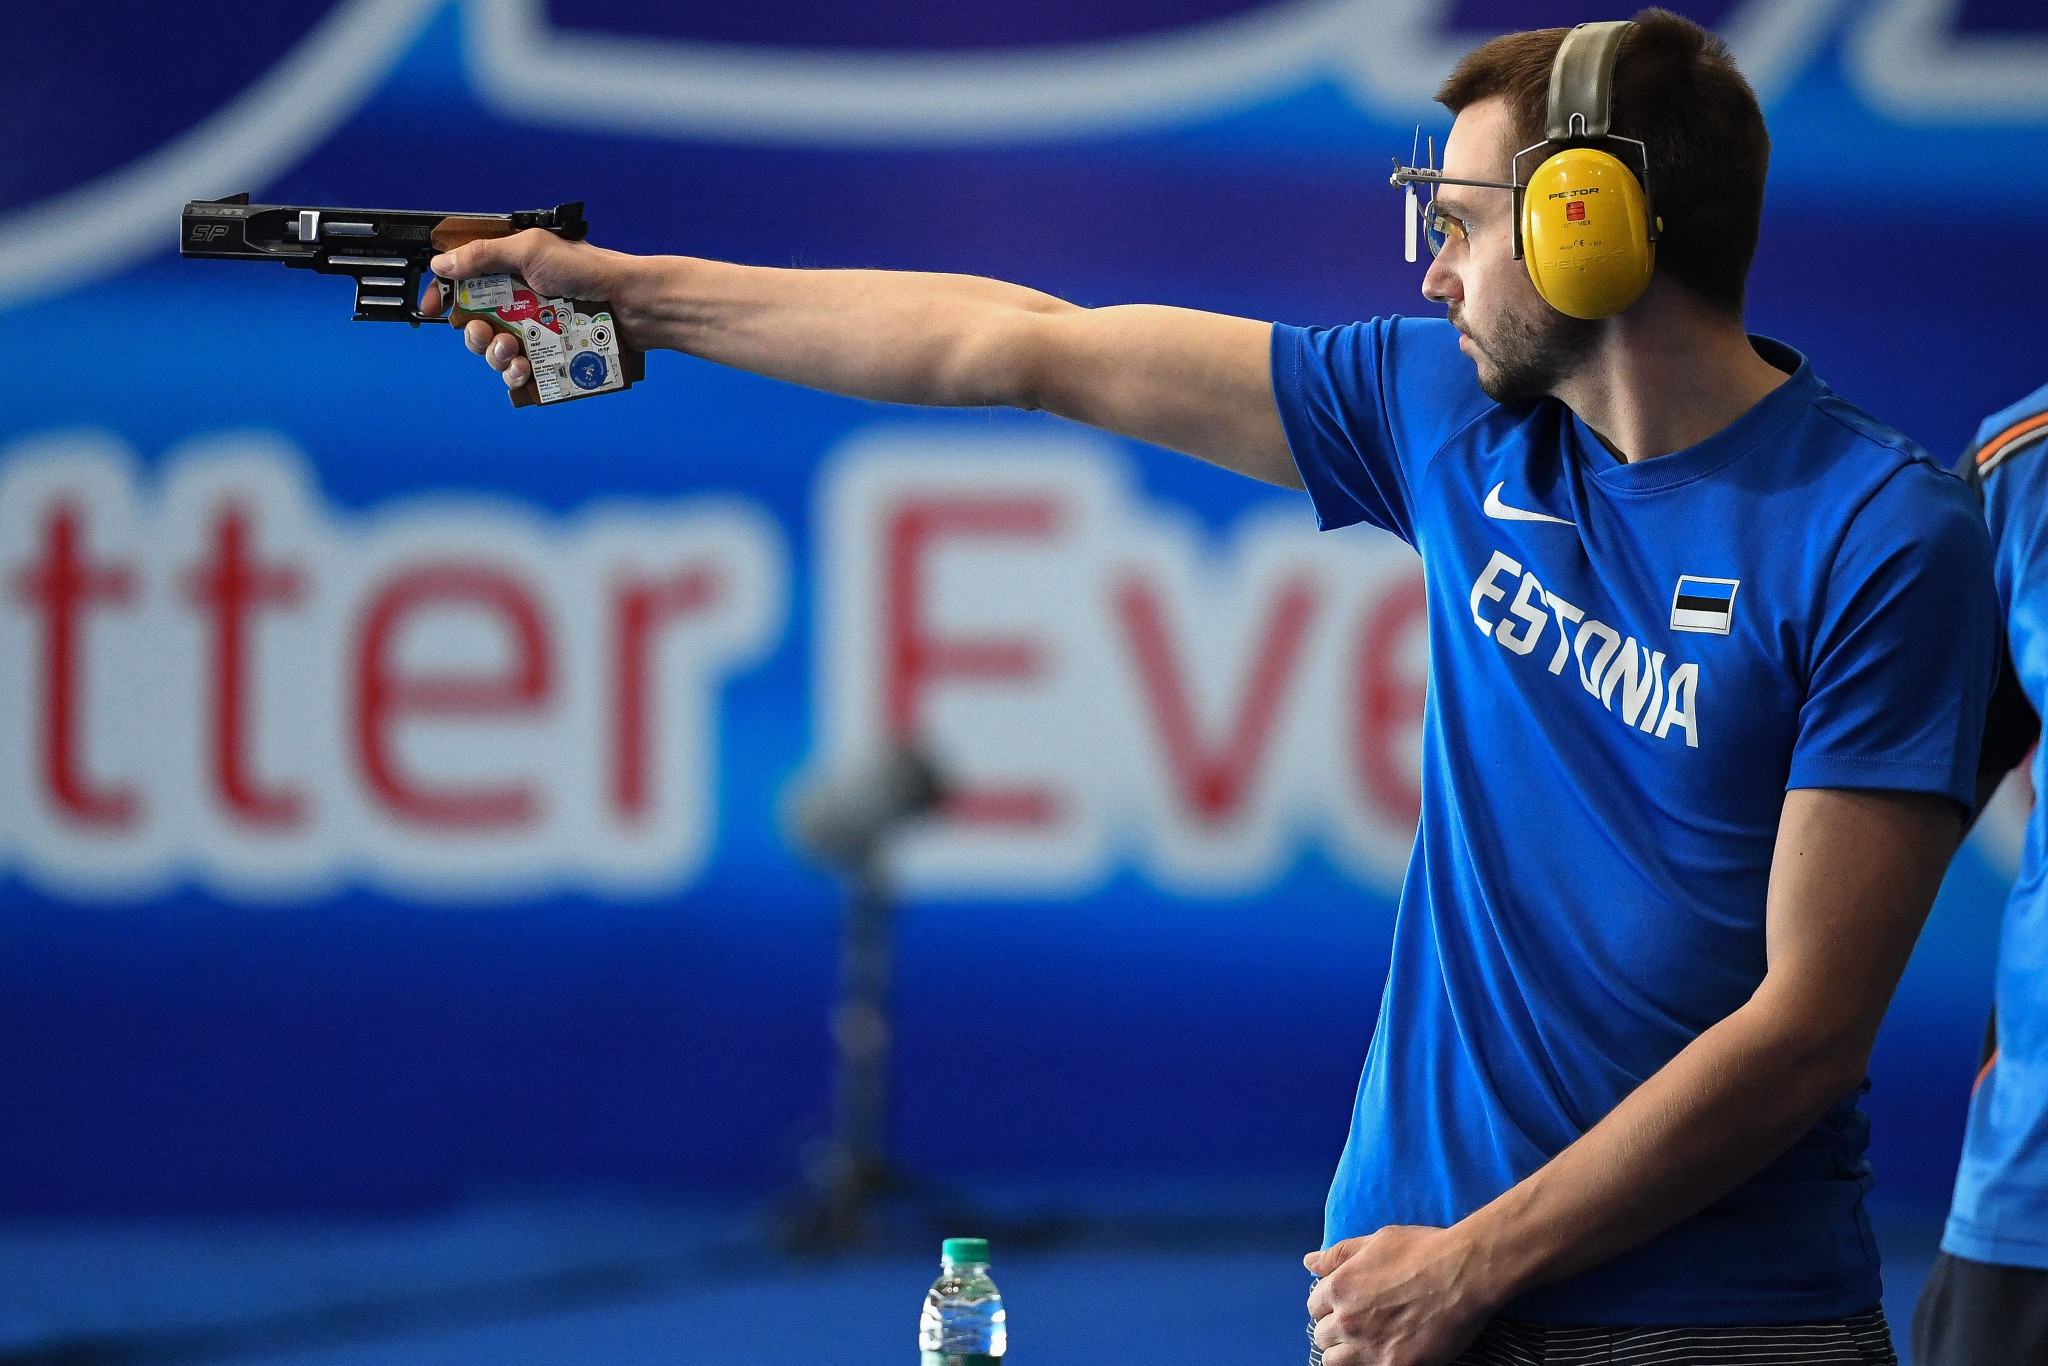 Olesk wins shoot-off to top pistol podium at ISSF World Cup